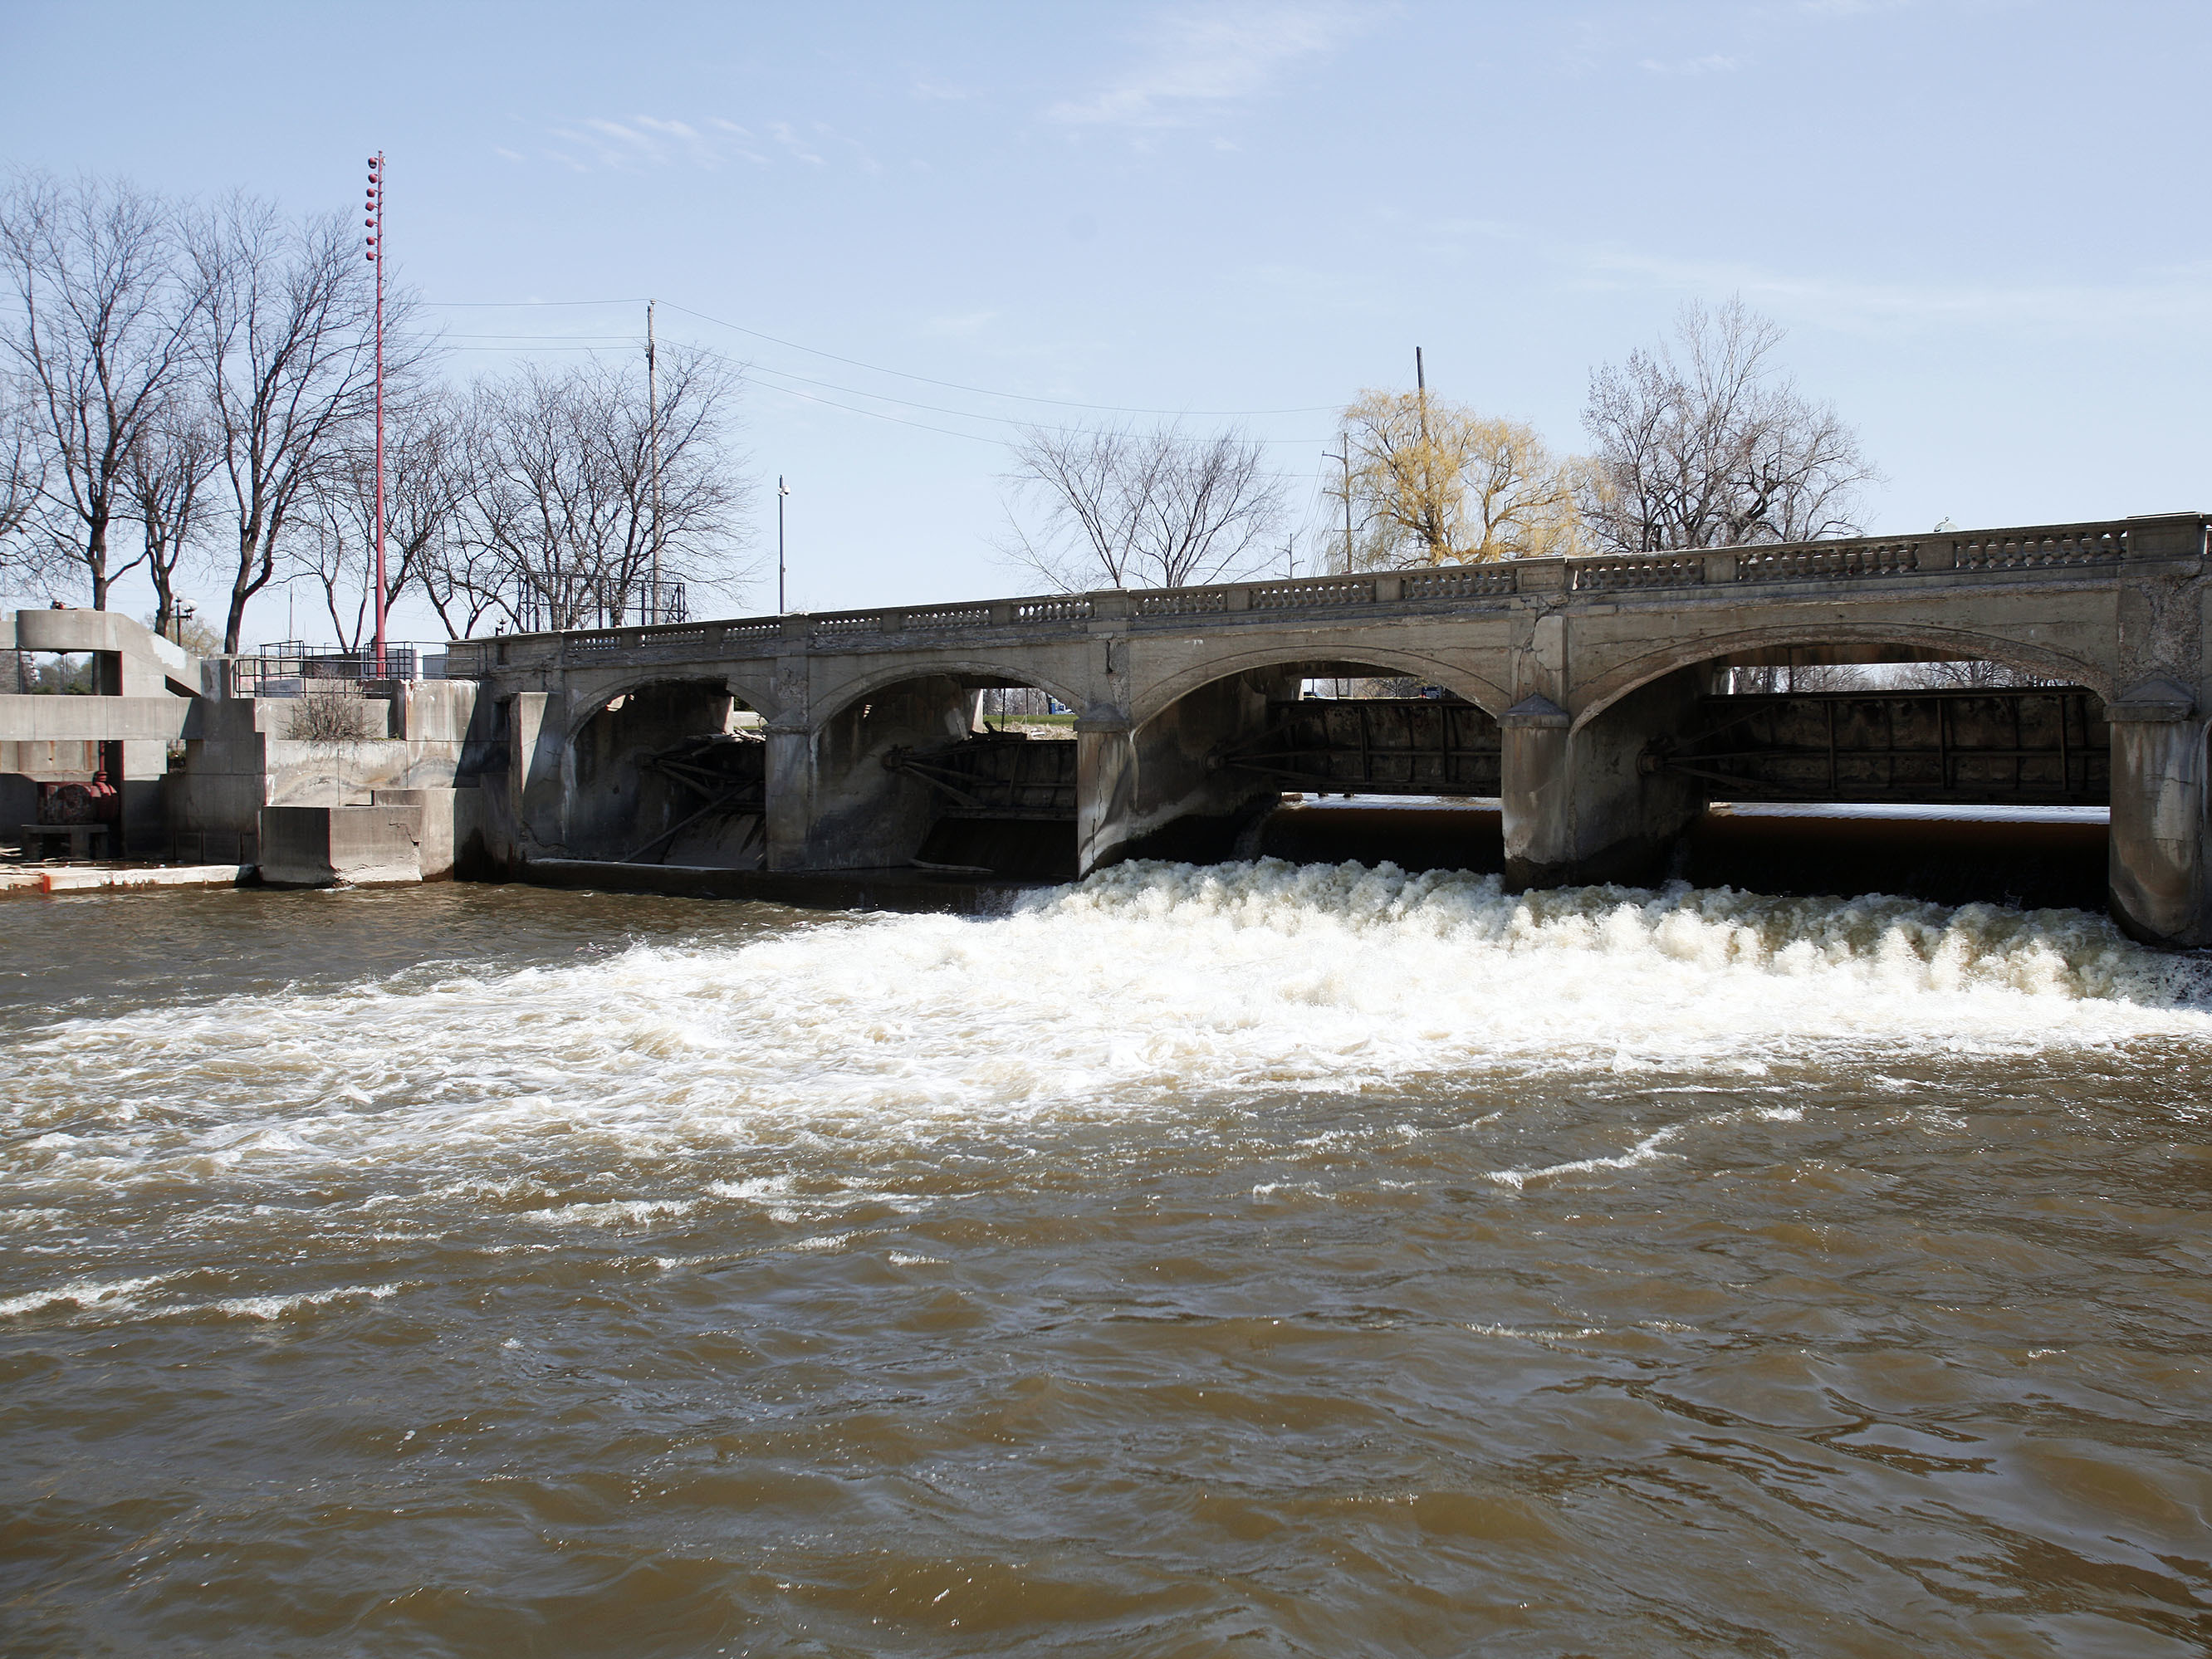 They 'Failed': 6 More Michigan Employees Charged In Flint Water Crisis